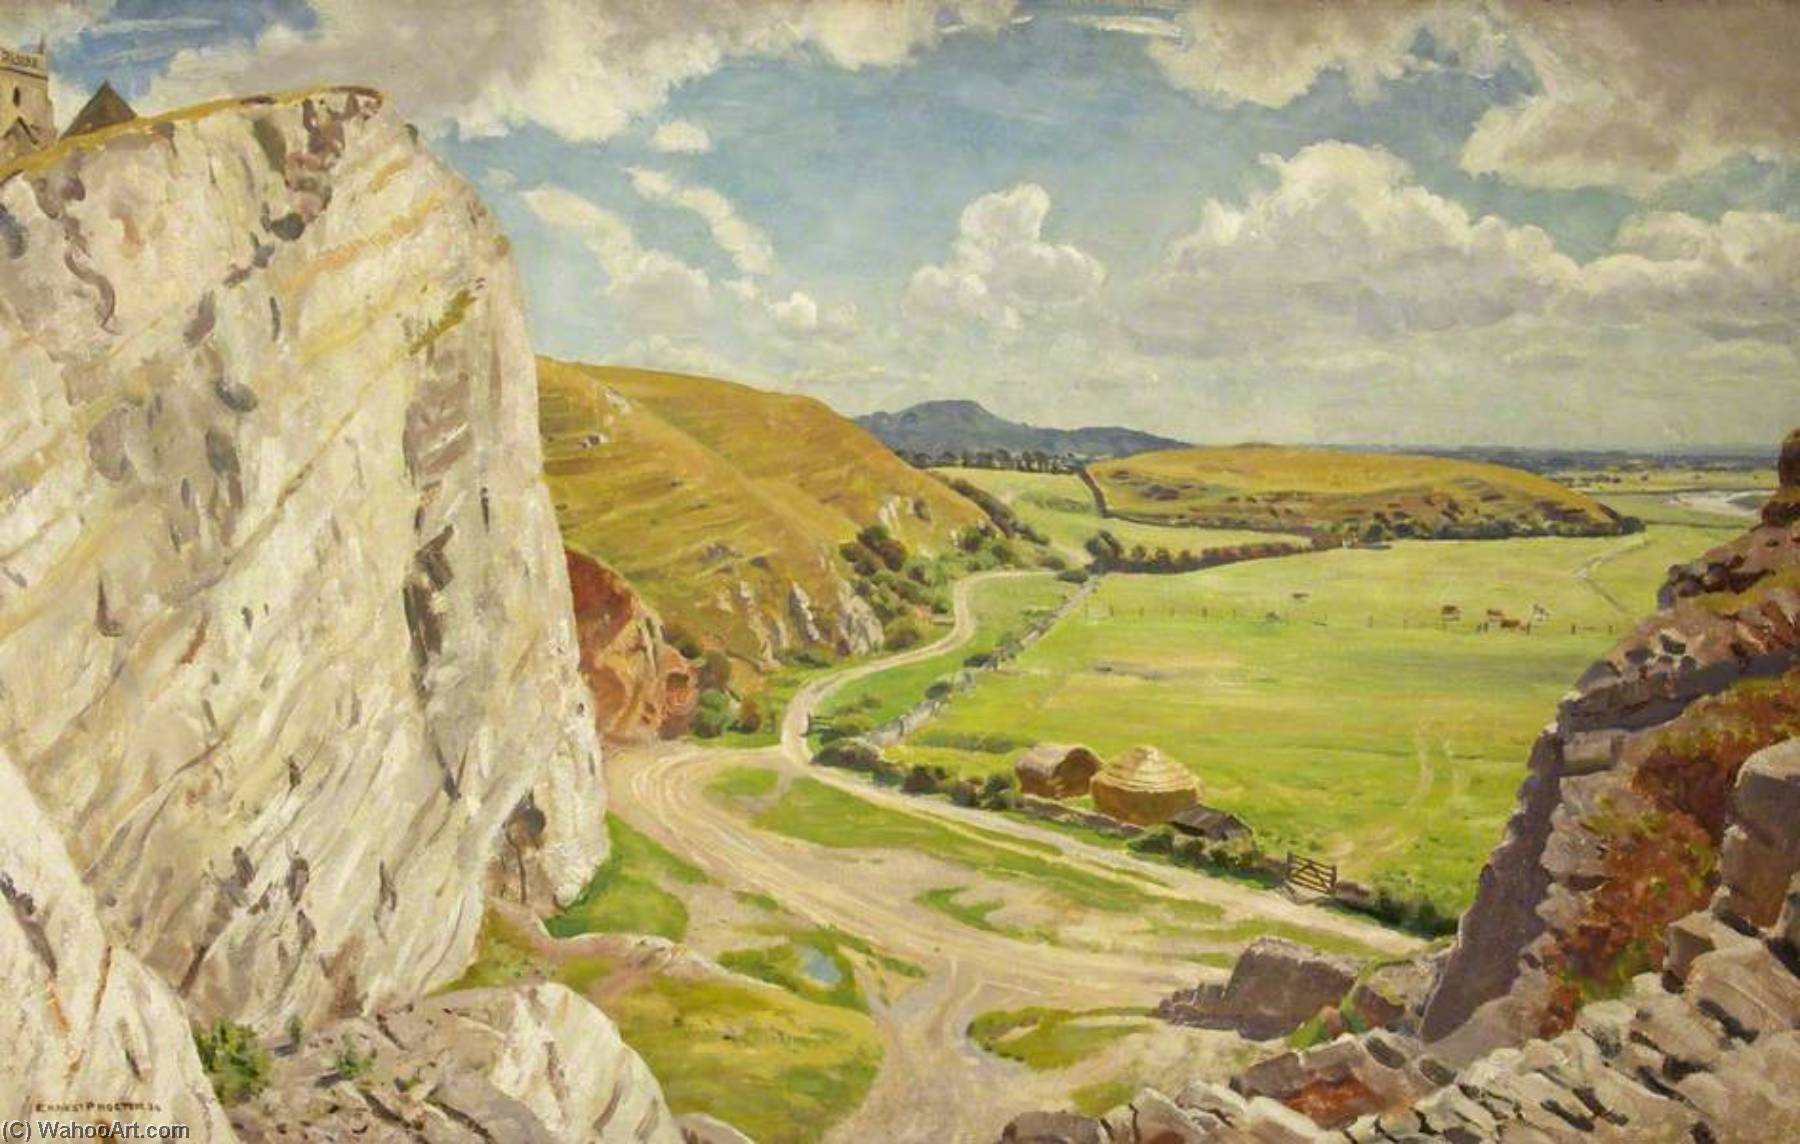 Uphill from the North, 1934 by Ernest Procter | Art Reproduction | ArtsDot.com